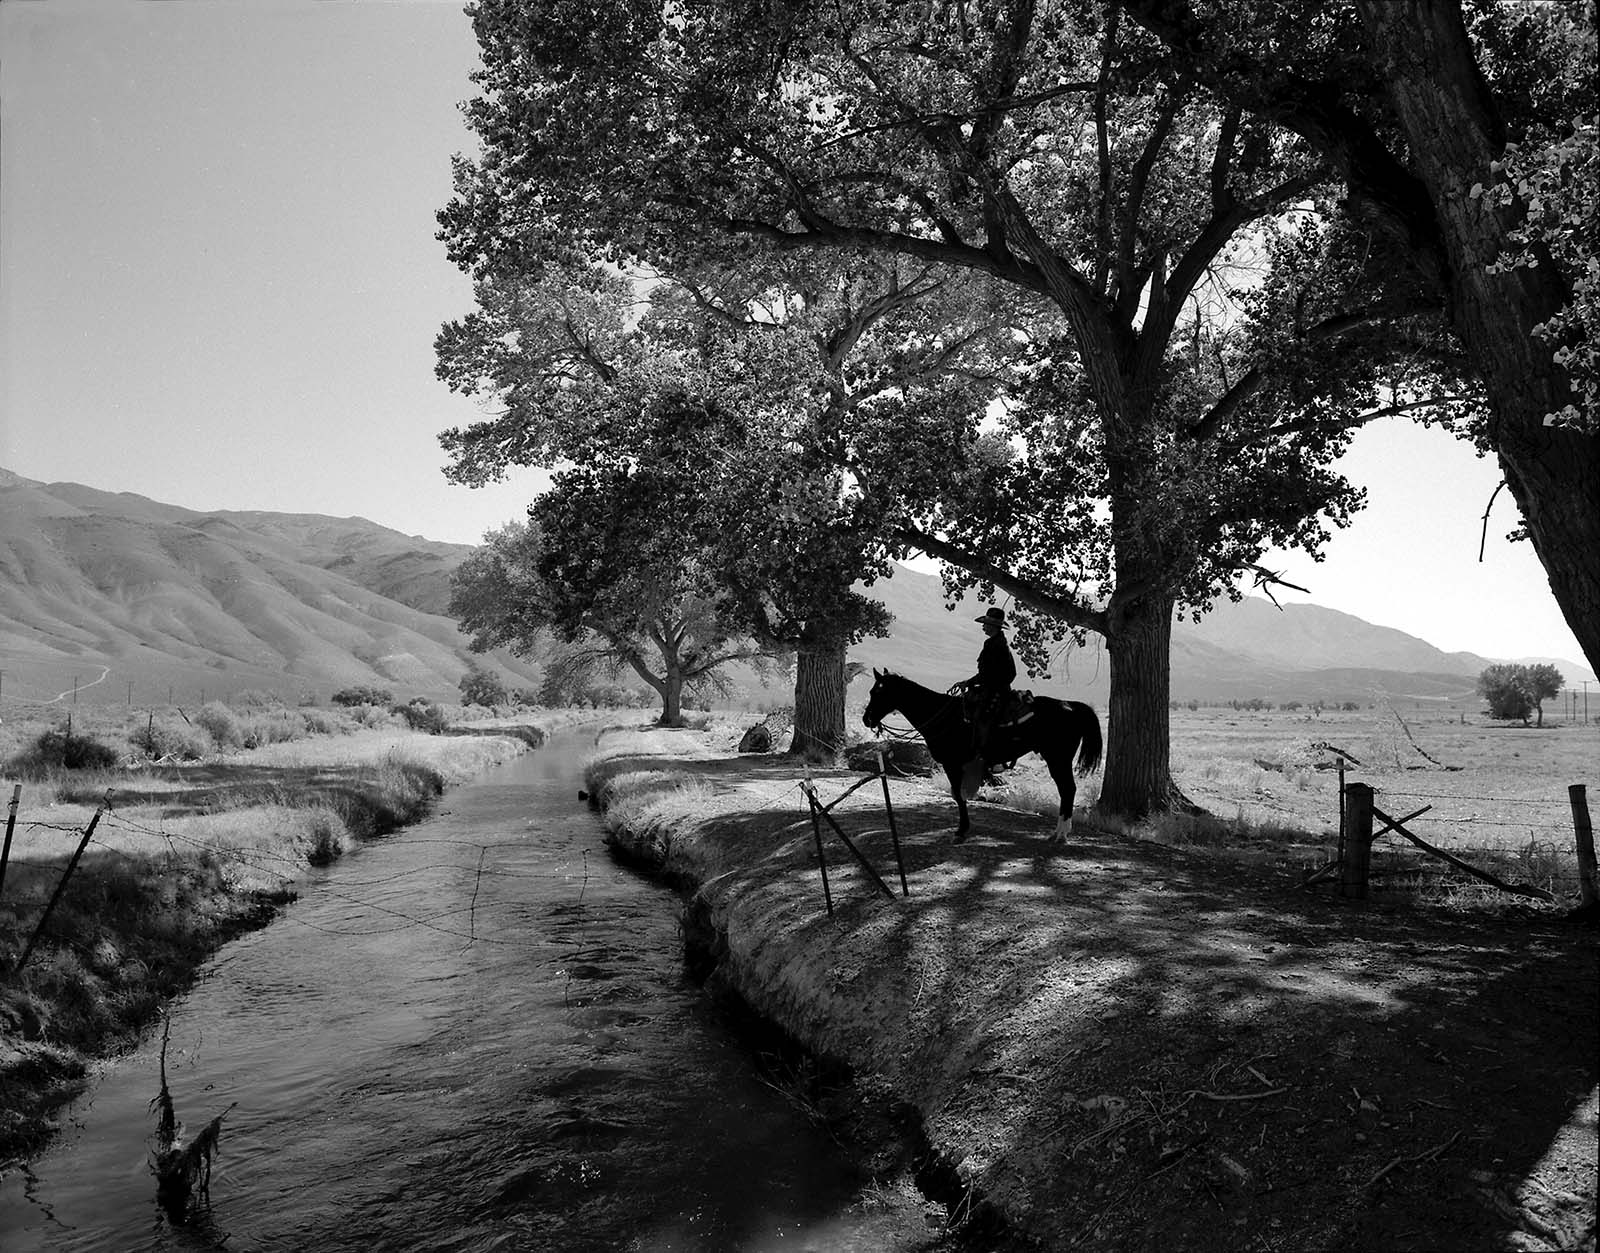 Rene Duykaerts, near Laws, Owens Valley, California 1995. Silver gelatin print by William Shepley. P.602.014